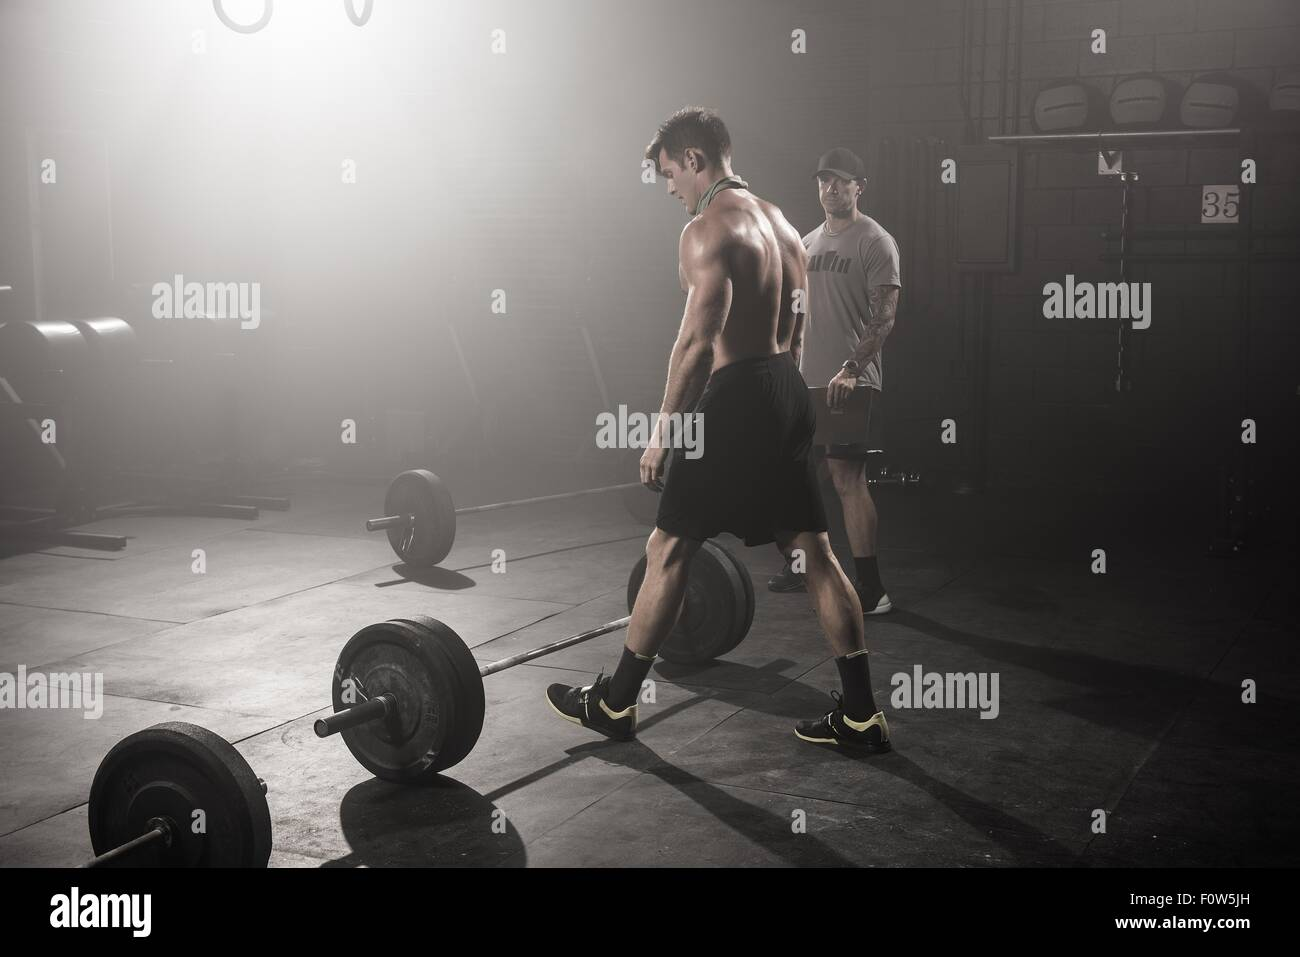 Mid adult man about to lift barbell, while trainer looks on - Stock Image